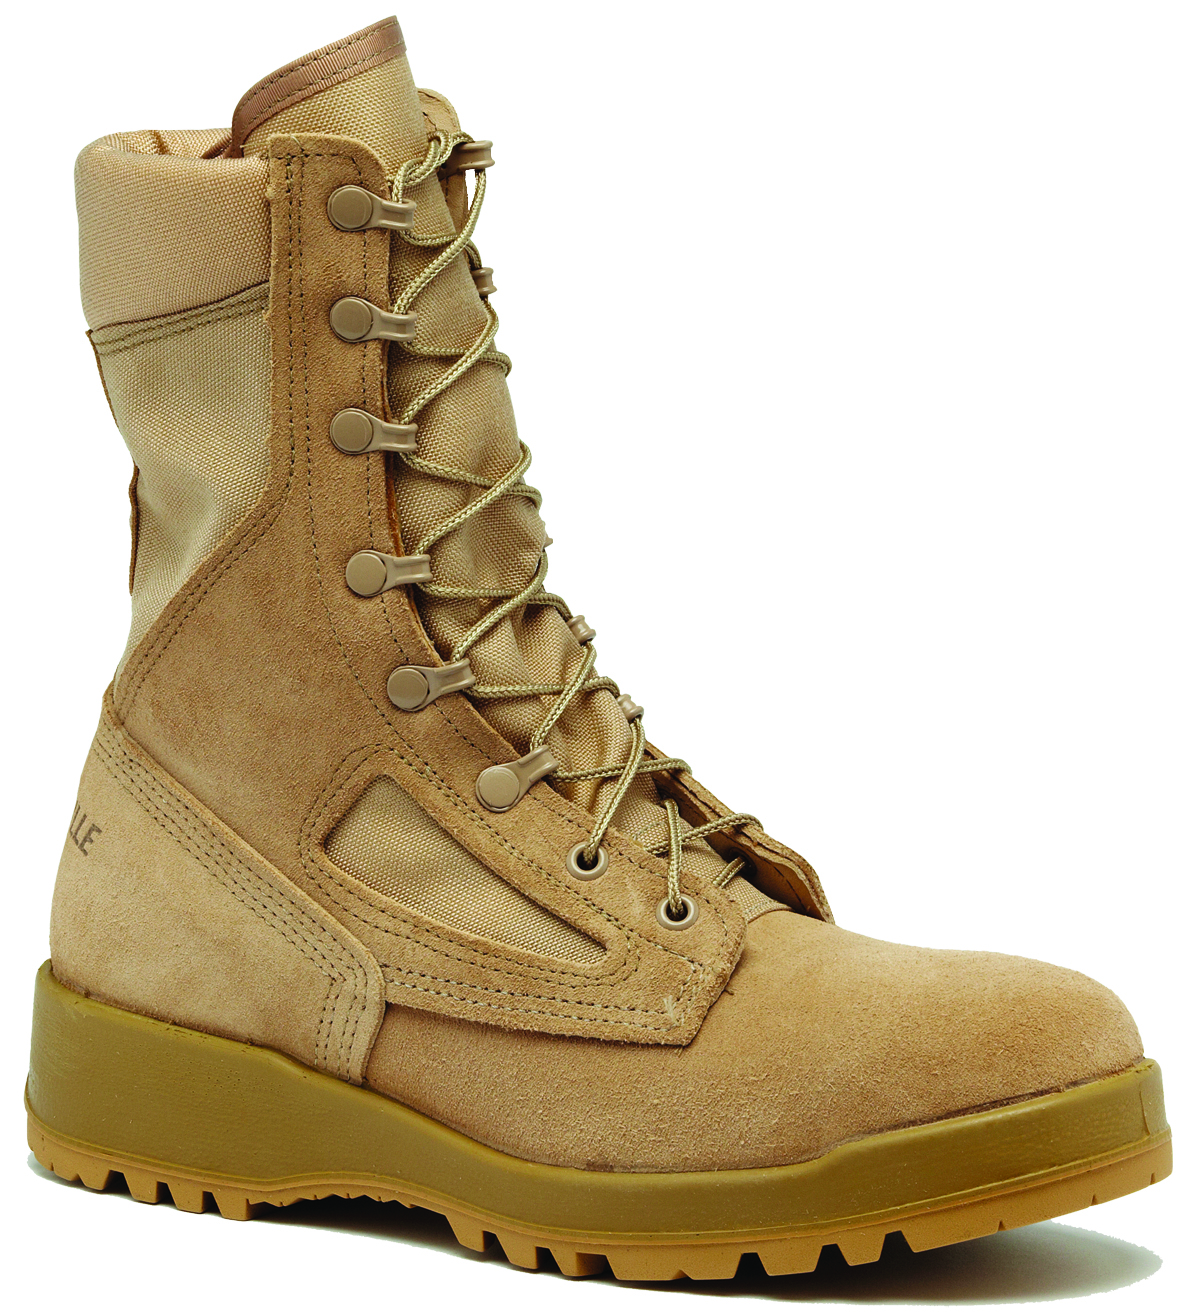 Belleville Combat Boots - Cr Boot